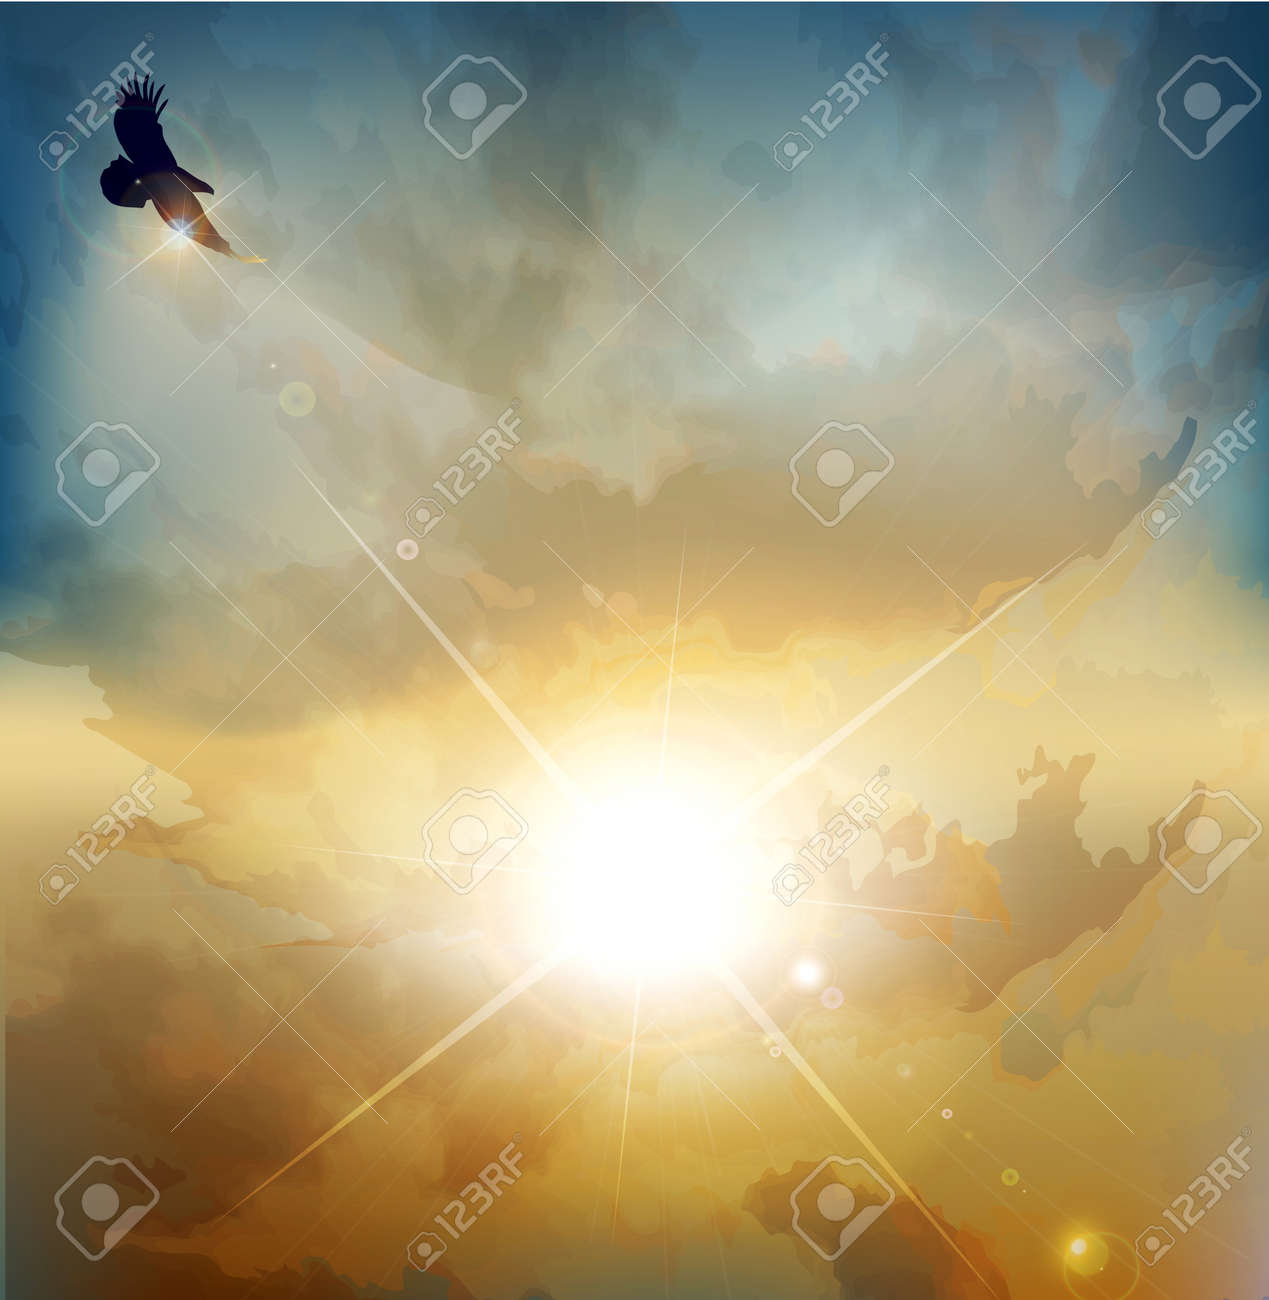 vector background with high-soaring eagle on a background of rising sun - 12488303